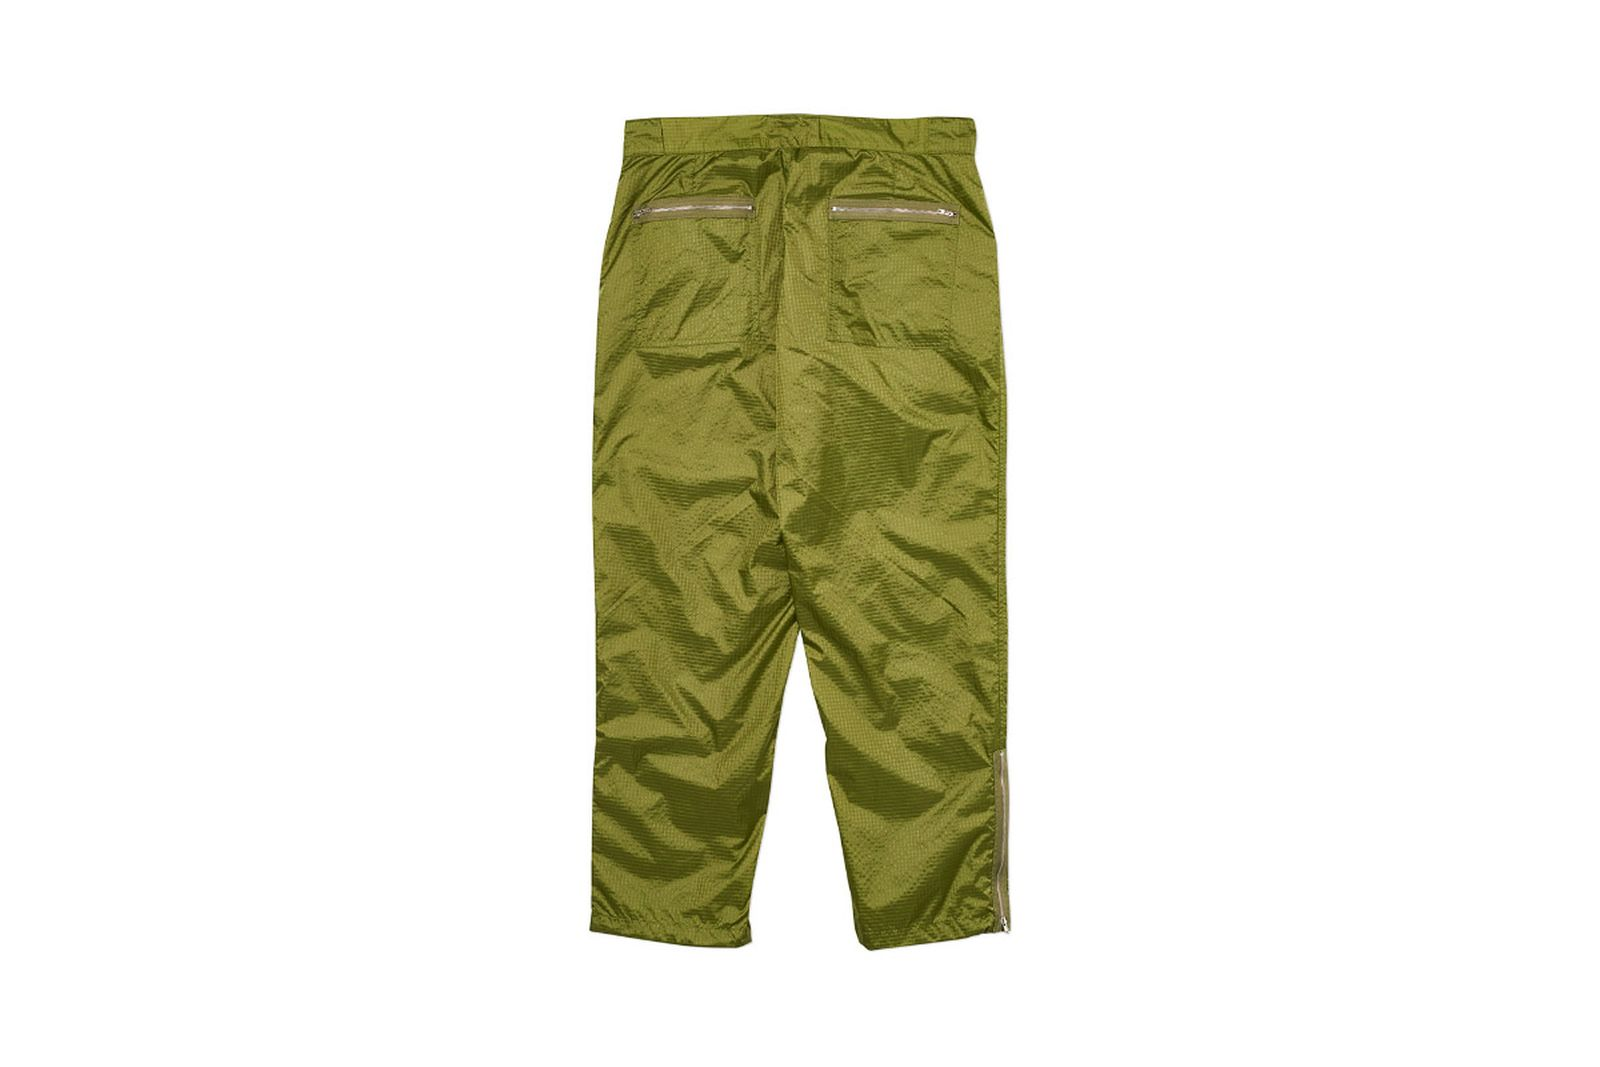 Palace 2019 Autumn Pant Flight green back fw19